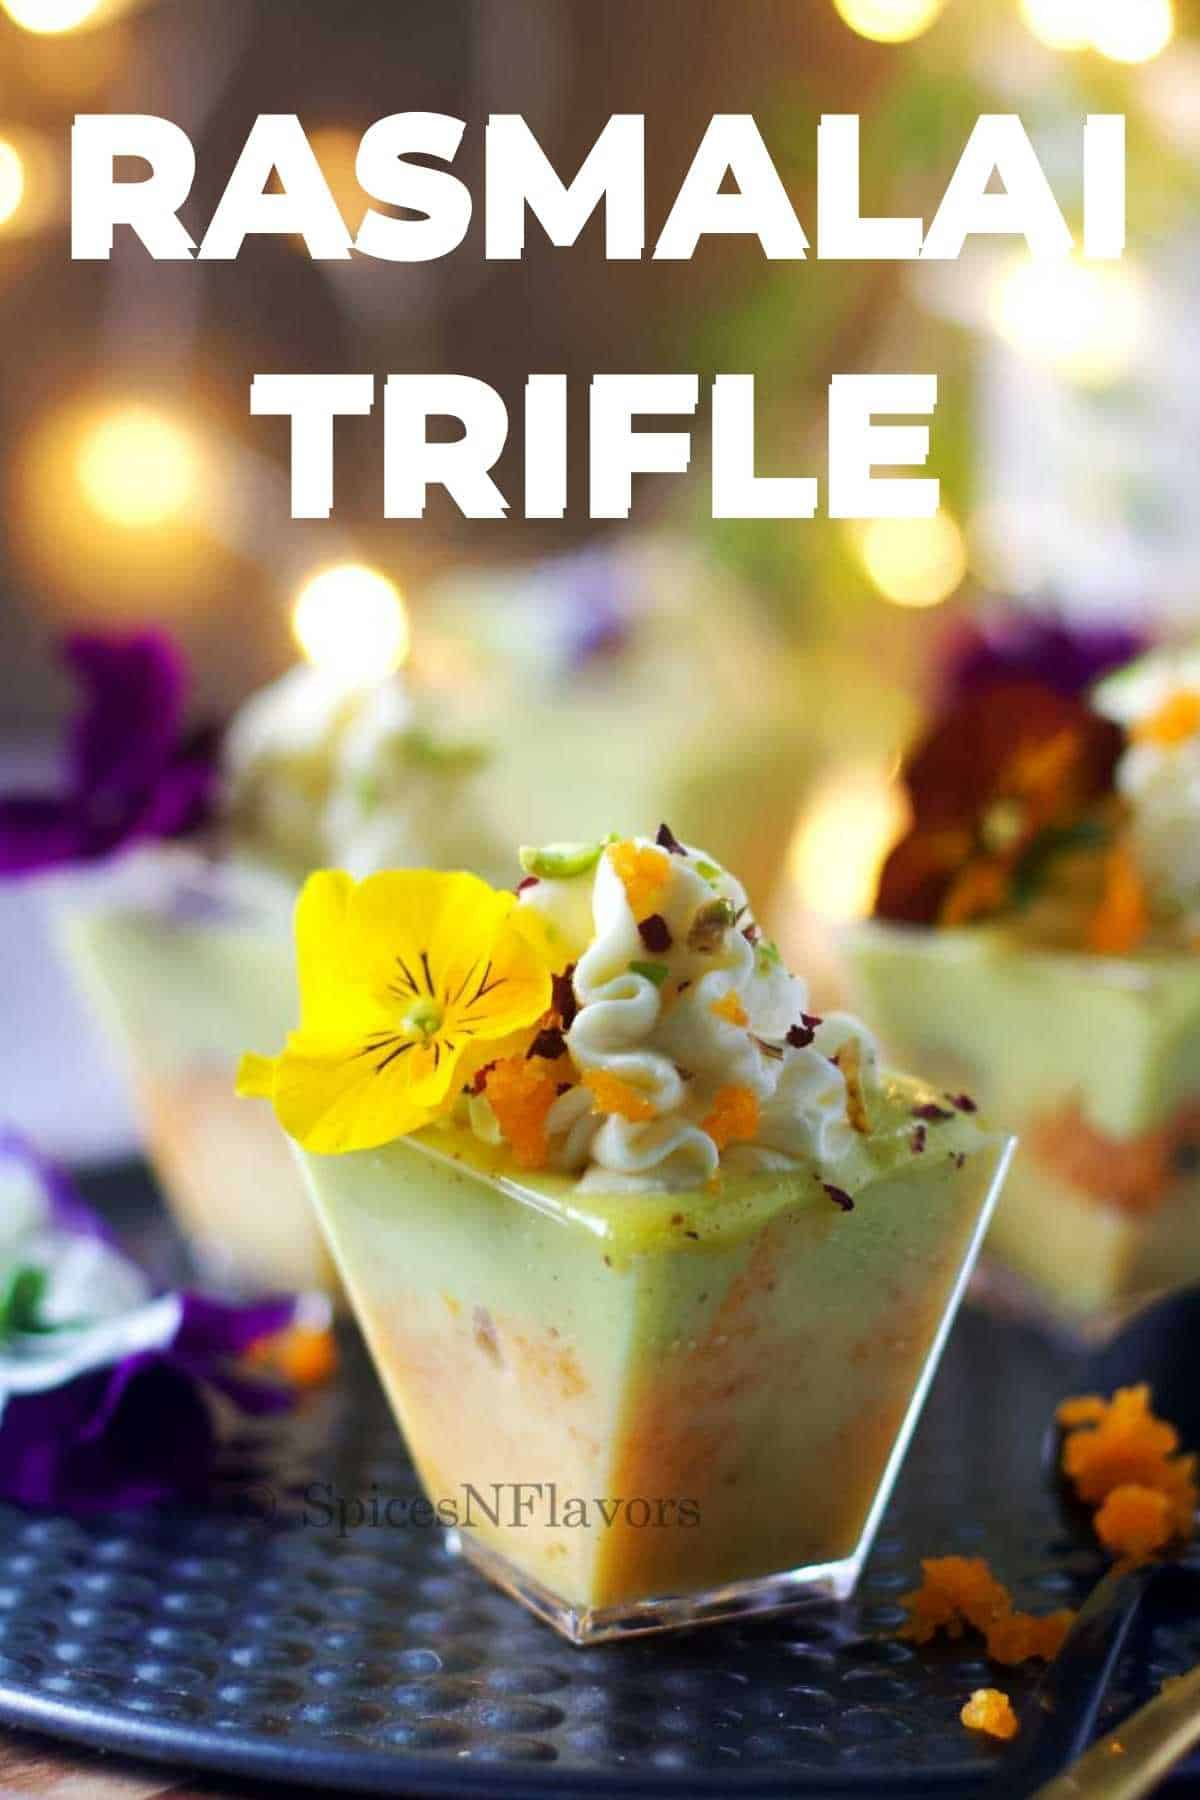 3 Rasmalai Trifle shot glasses placed on a cake tray with lights in the background